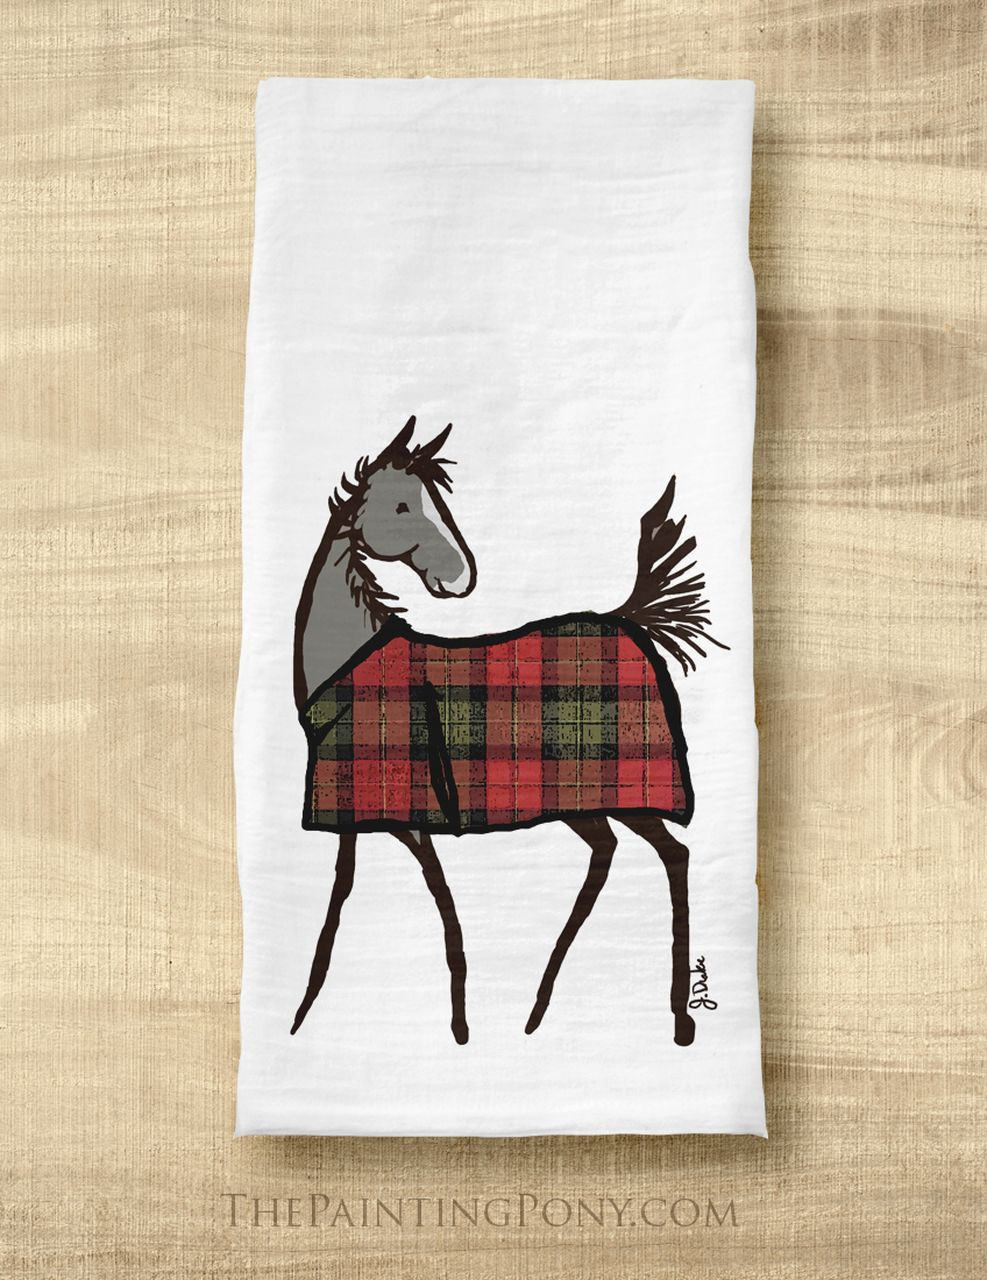 Merry Christmas in lots of ways Large Cotton Tea Towel by Half a Donkey